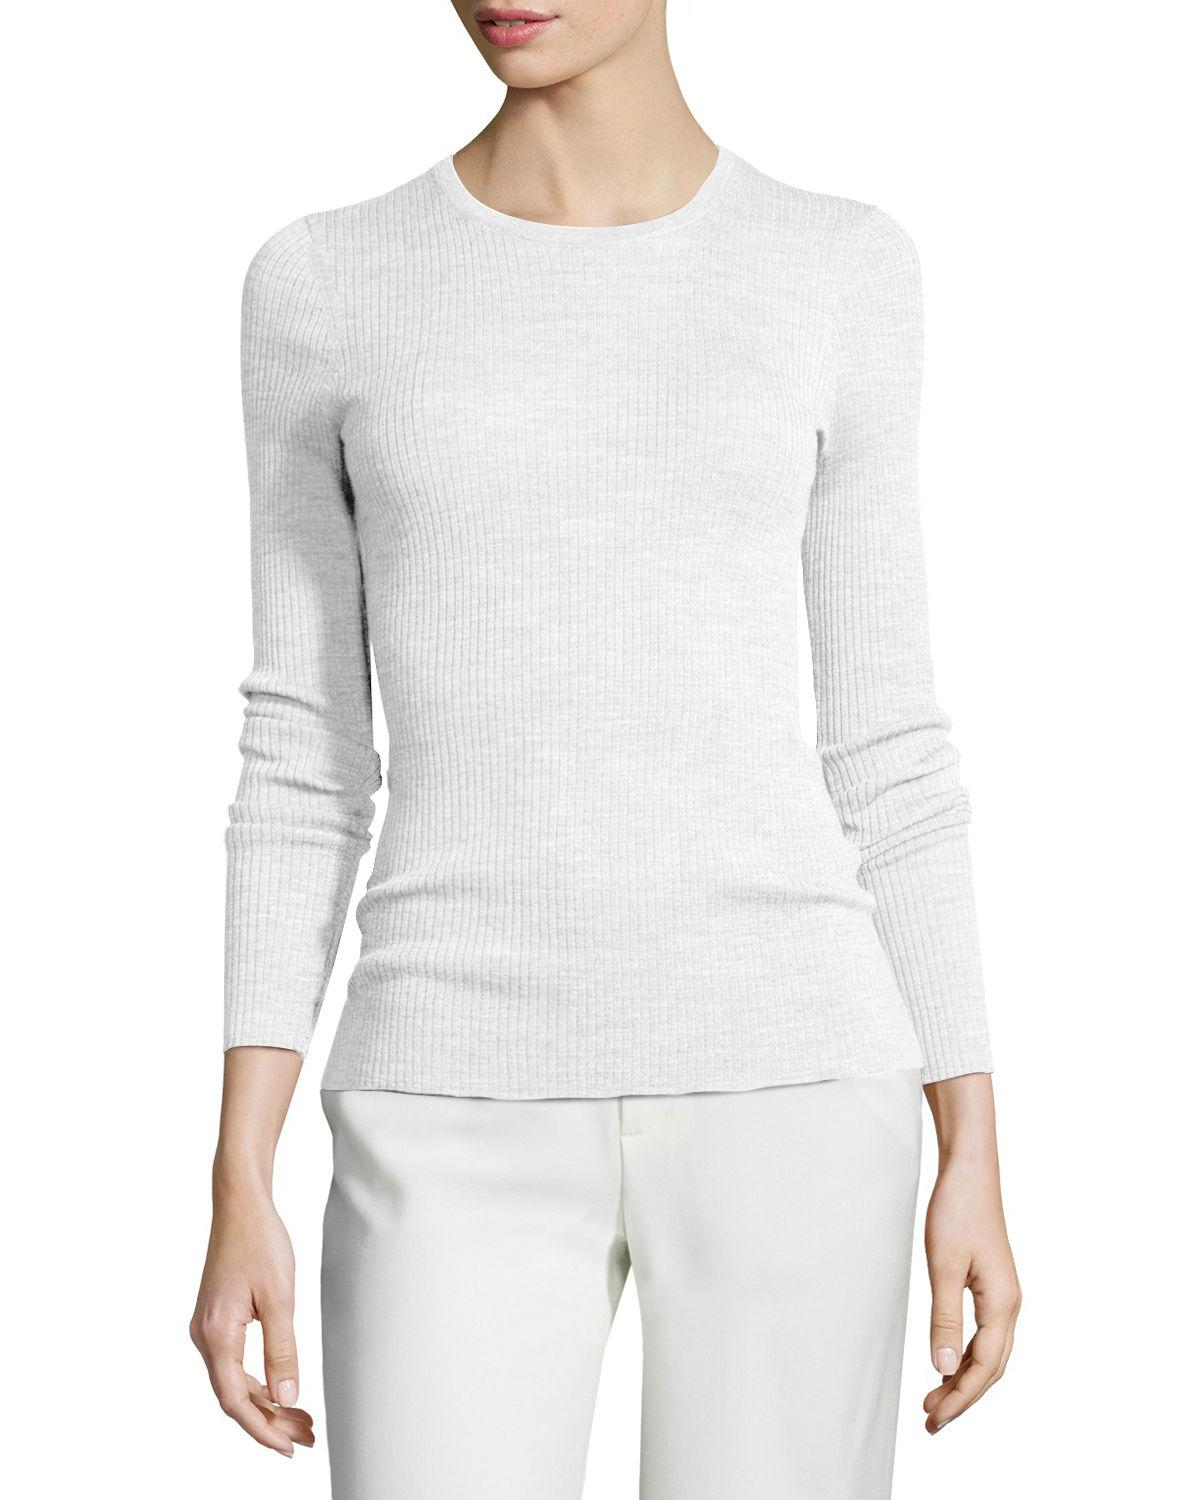 8cfe06a8d3 Theory Mirzi Refine Ribbed-knit Sweater in White - Lyst